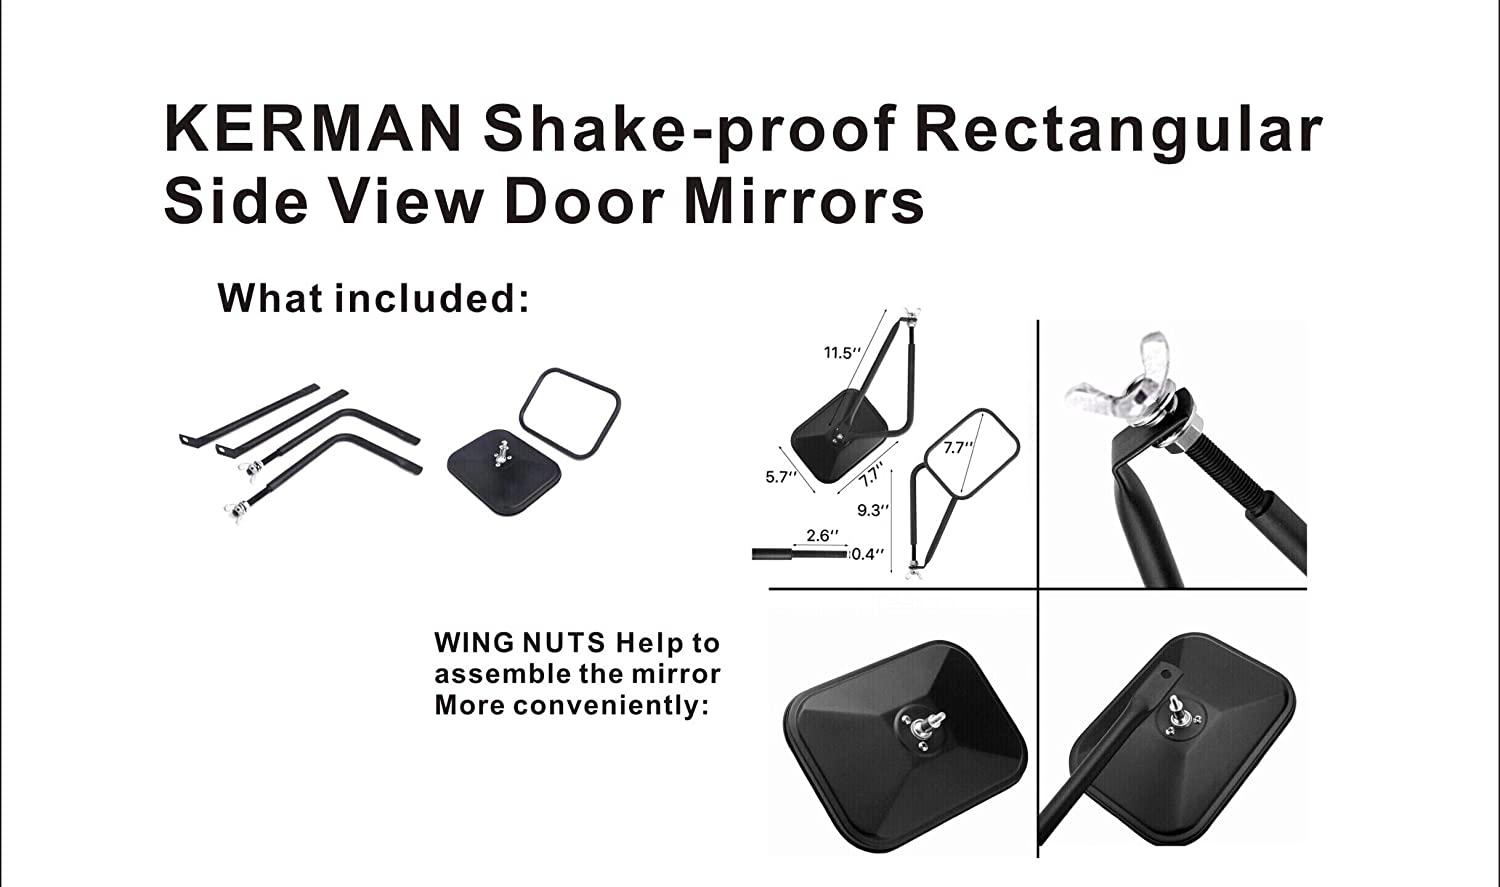 KERMAN Shake-proof Off-Road Rectangular Adventure Mirrors 44 Doorless Mirrors Bolt-on Door Hinge Mirror for Jeep Wrangler TJ JK JKU CJ JL 1 PAIR Textured Black